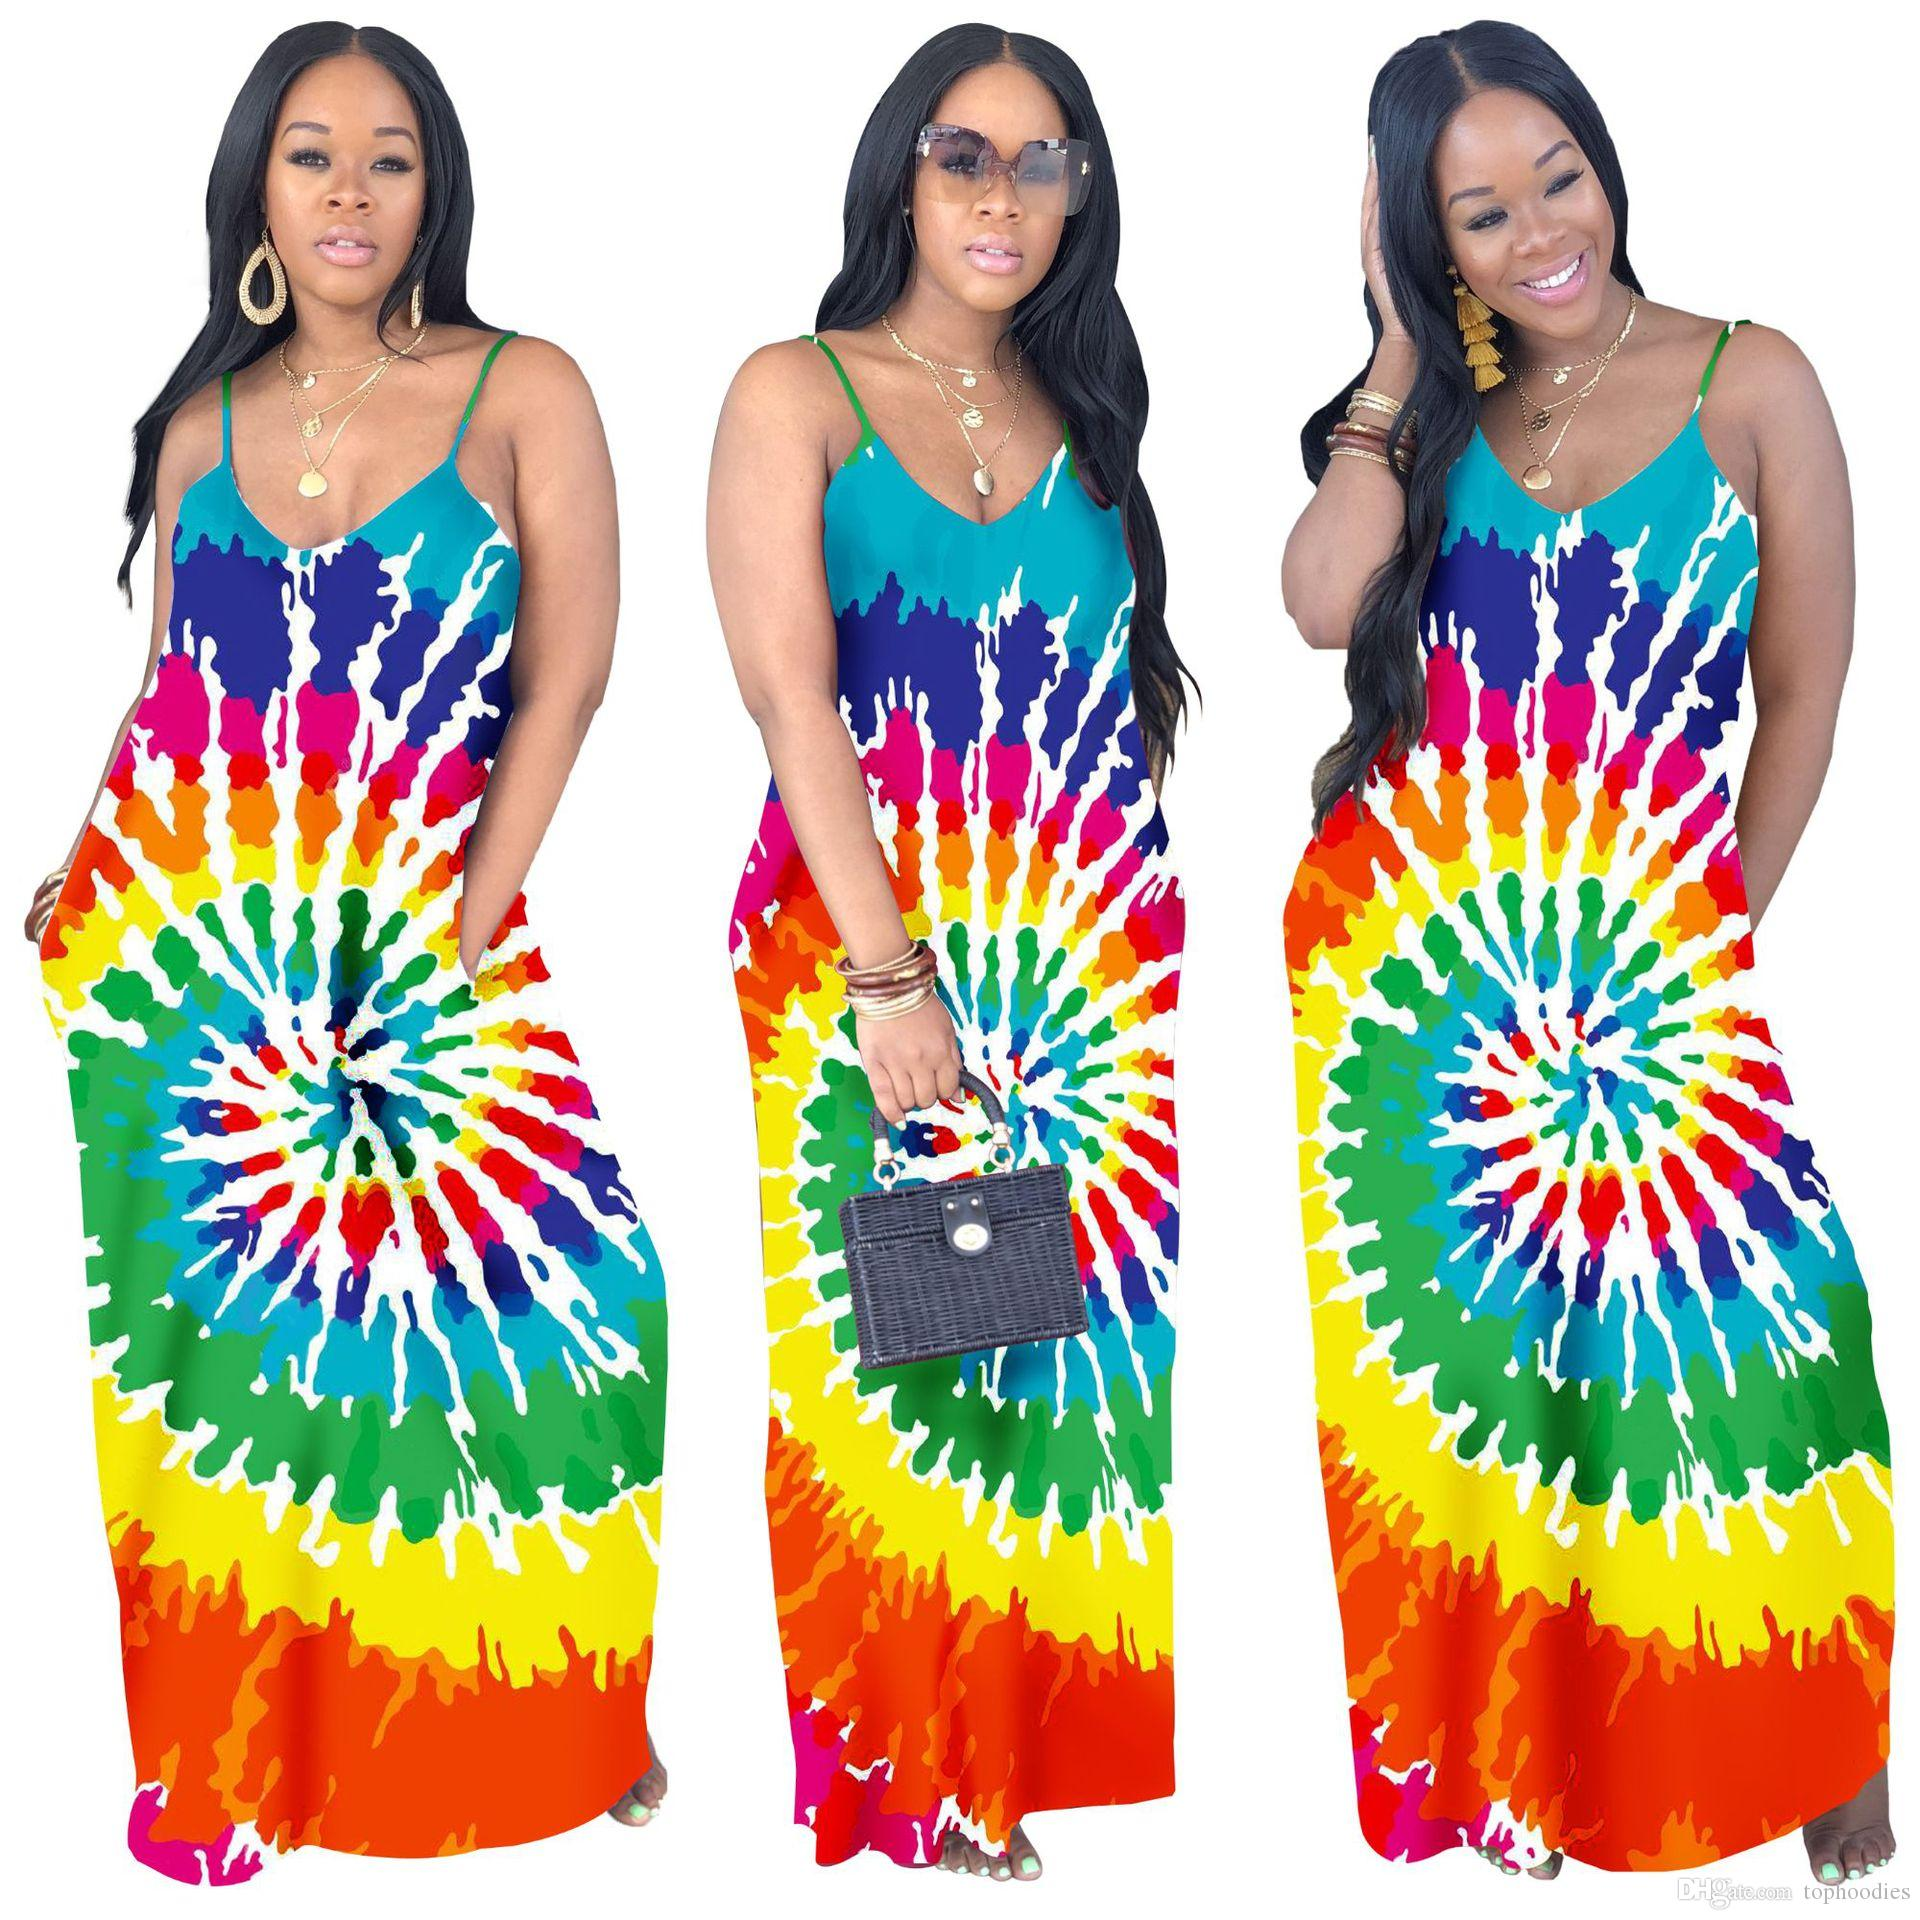 cd73b45337853 Rainbow Tie Dye Sexy Boho Beach Dresses Women Spaghetti Strap Backless Long  Maxi Dress Summer V Neck Sleeveless Plus Size Dress